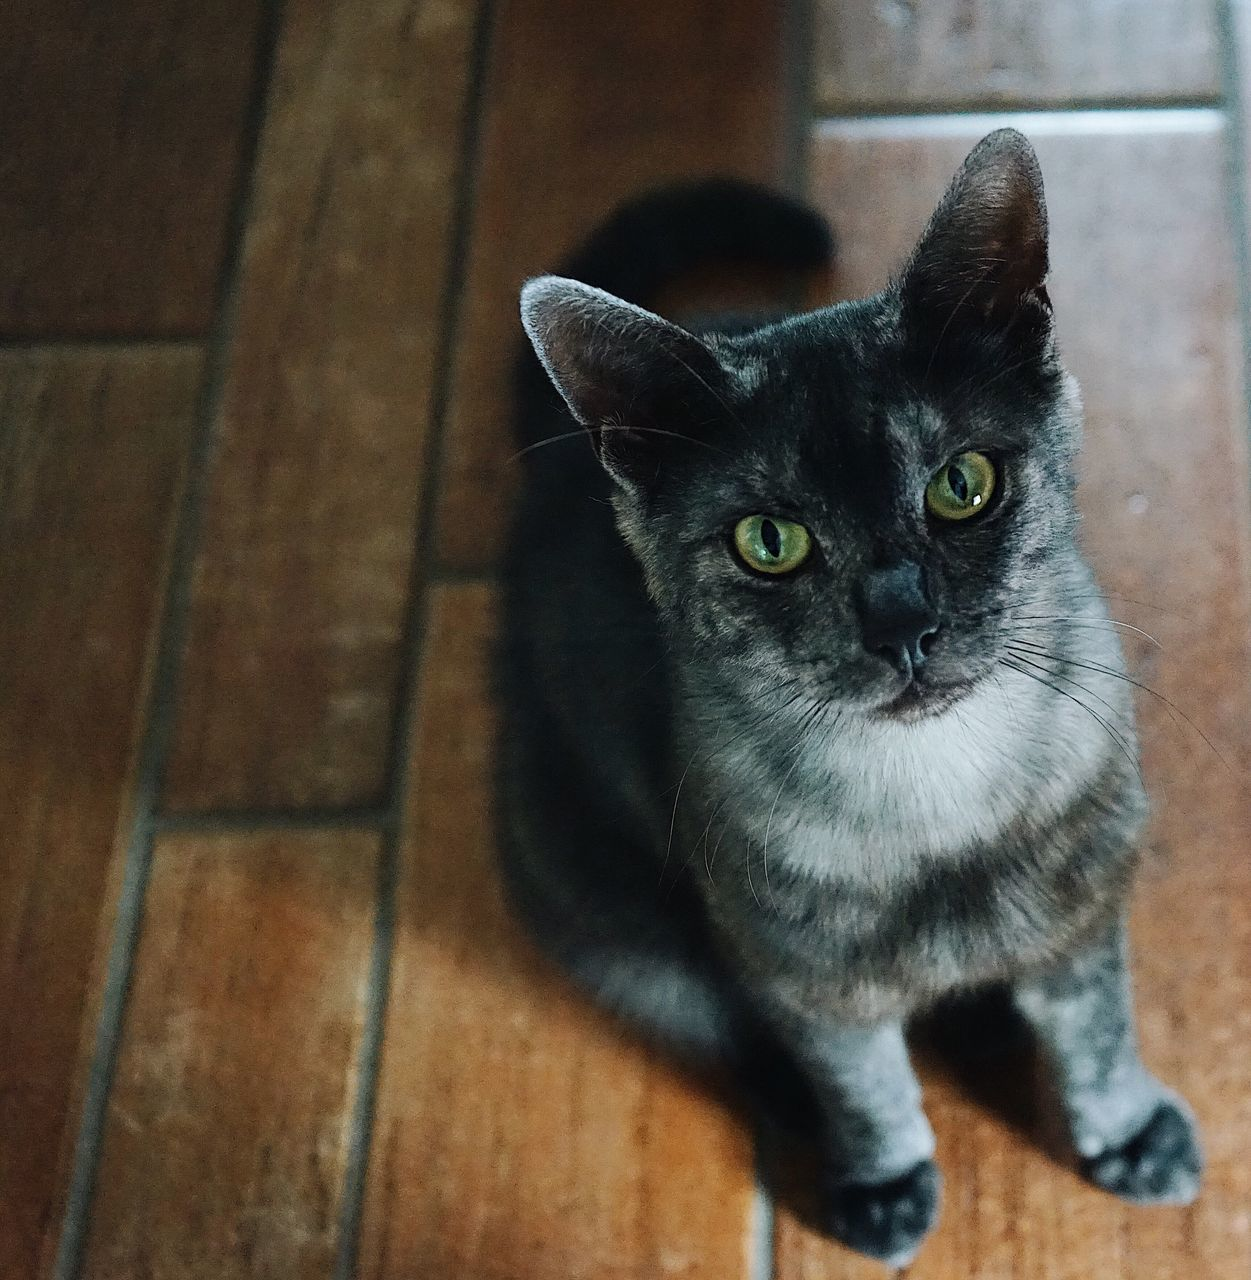 domestic cat, pets, domestic animals, one animal, mammal, animal themes, feline, looking at camera, indoors, no people, portrait, sitting, day, close-up